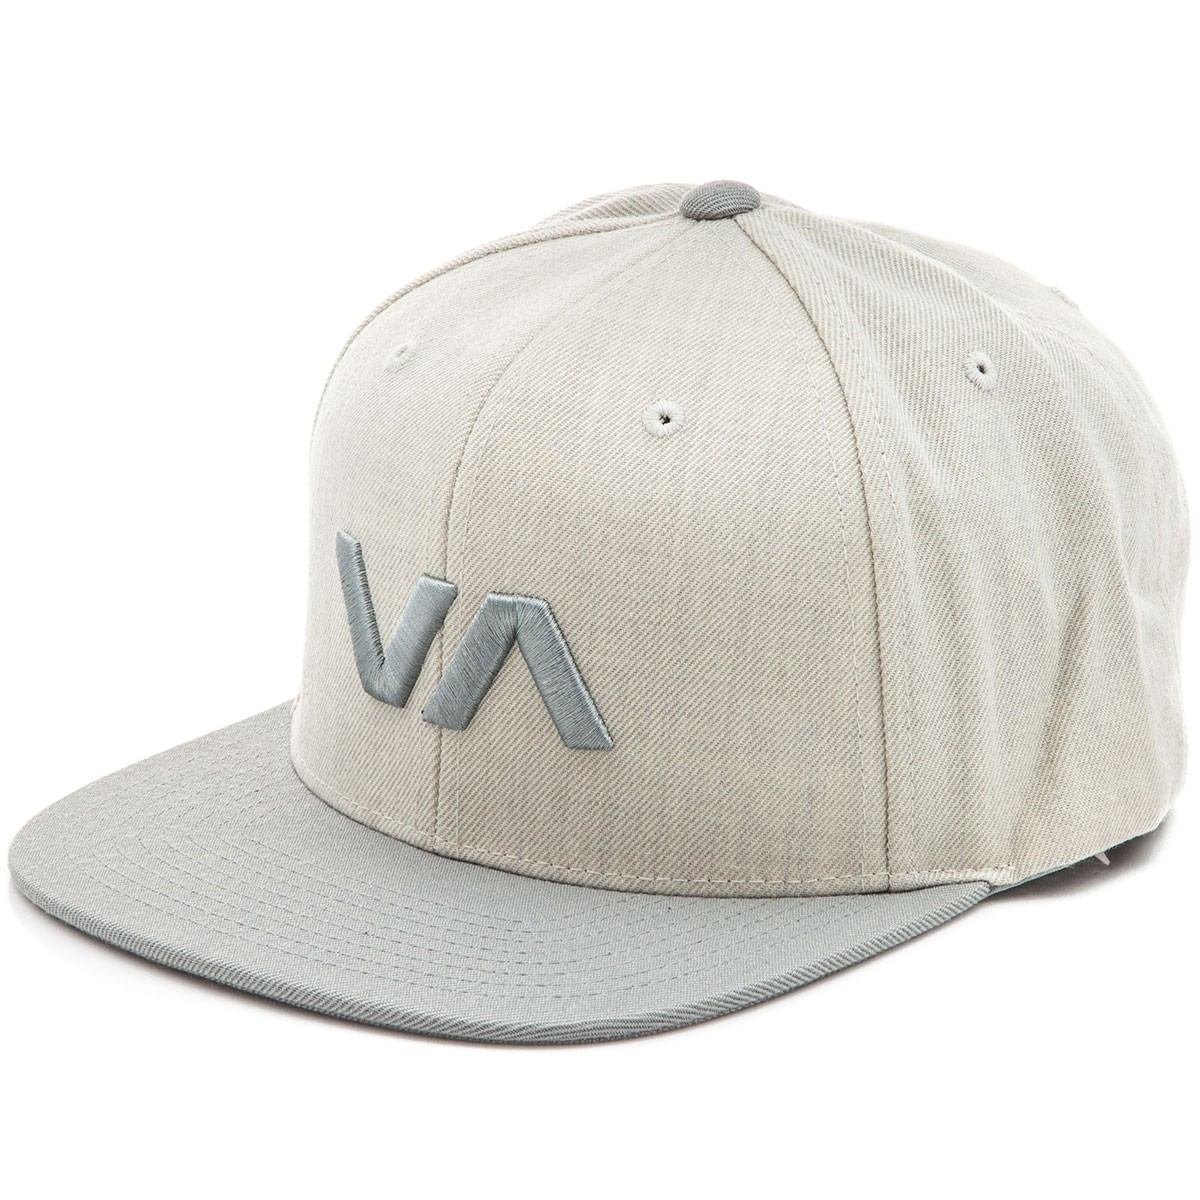 RVCA VA II Snapback Hat - Khaki Heather